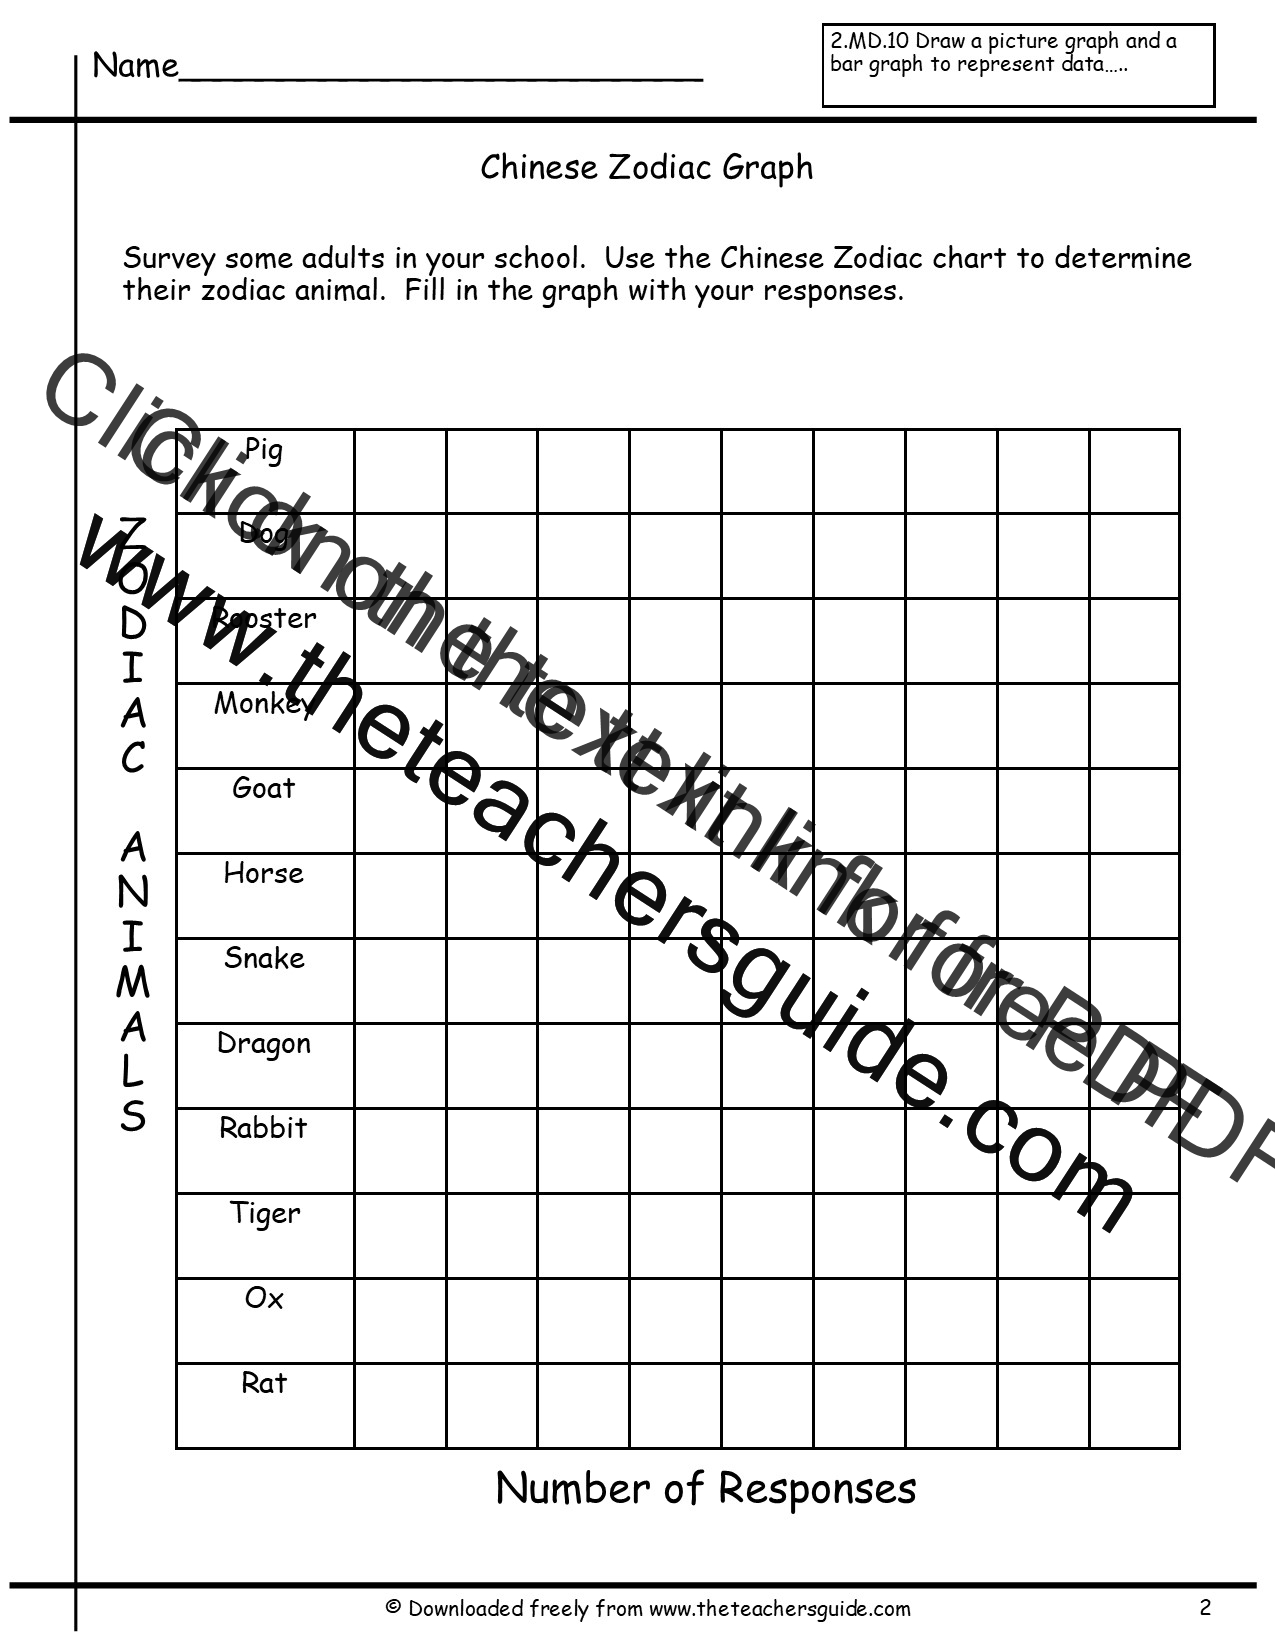 Reading and Creating Bar Graphs Worksheets from The Teacher\'s Guide